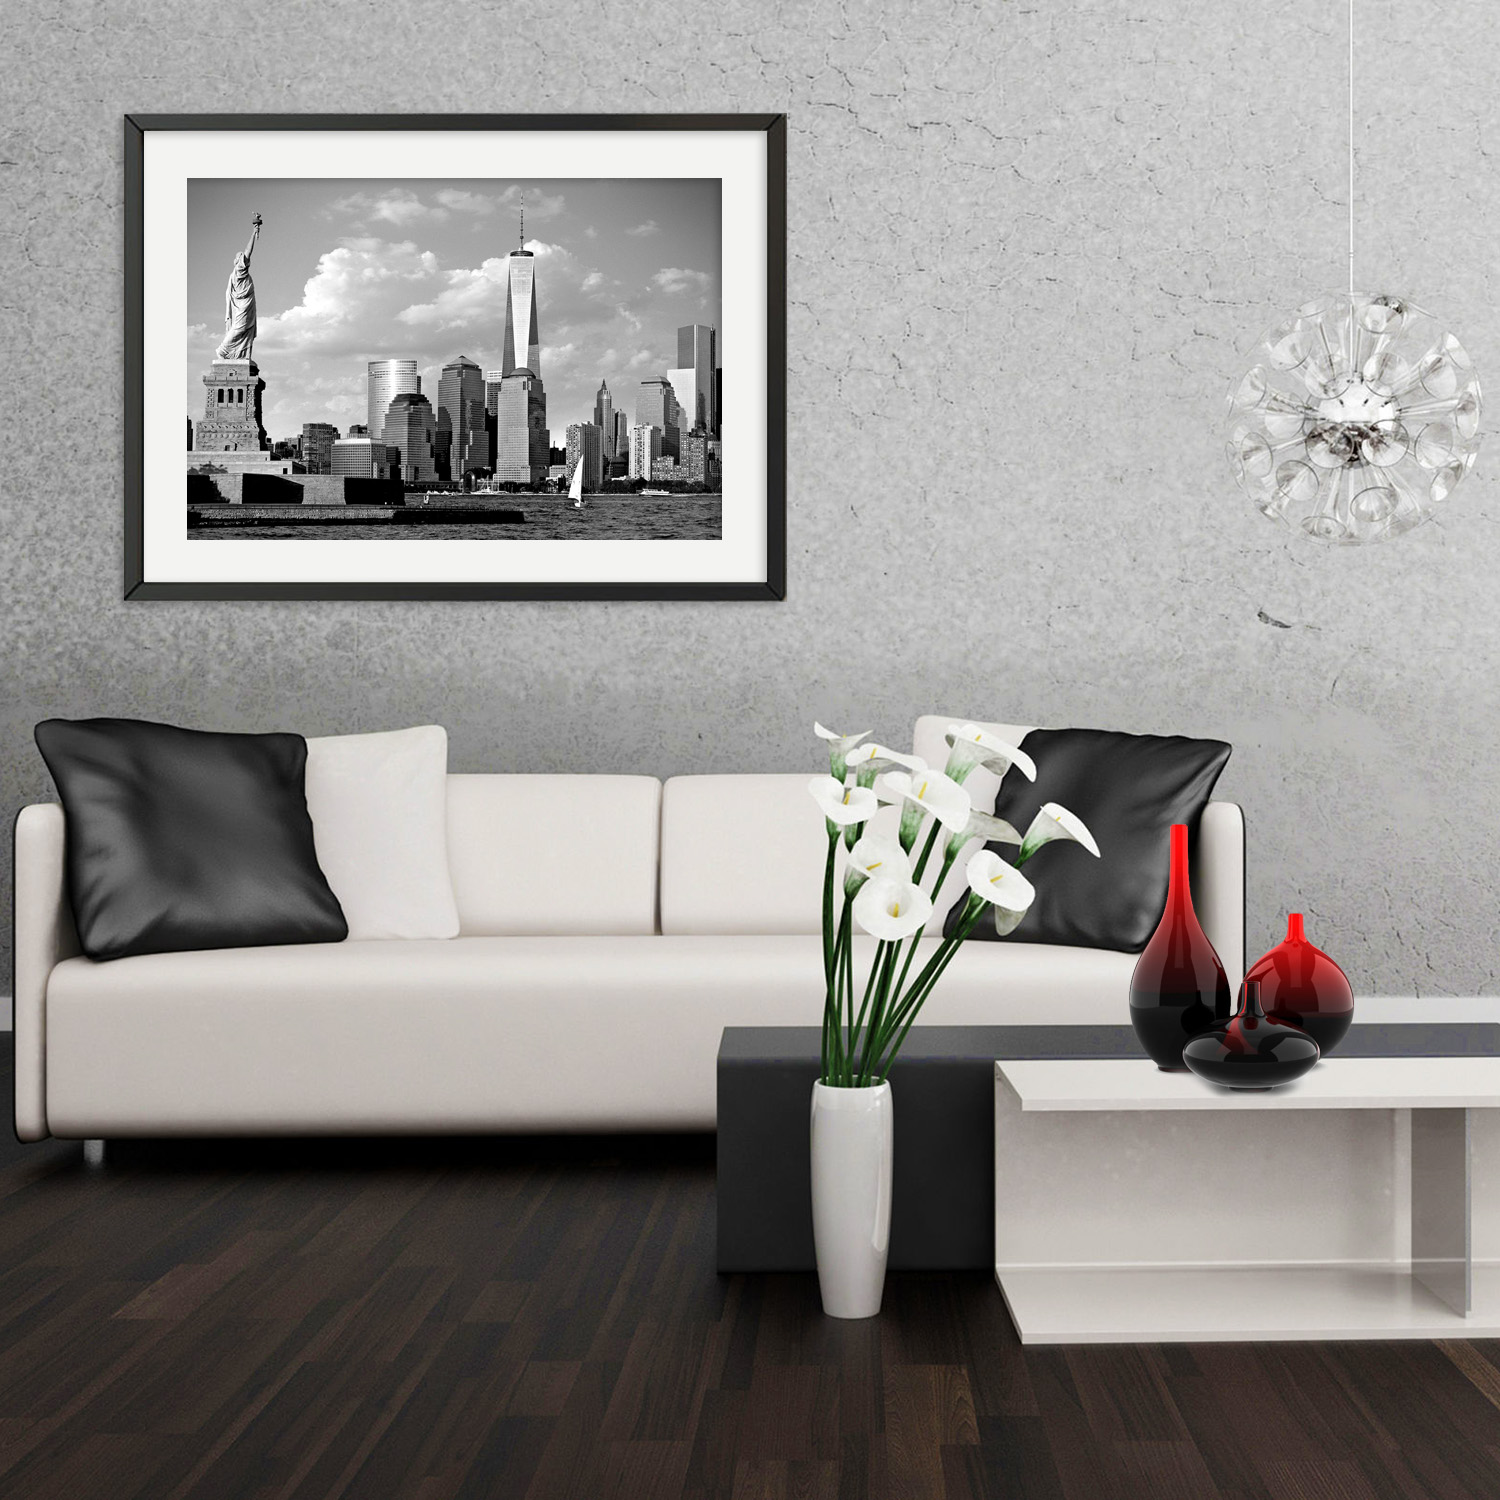 Statue Of Liberty And Freedom Tower New York Art Print Ny Christmas Gifts